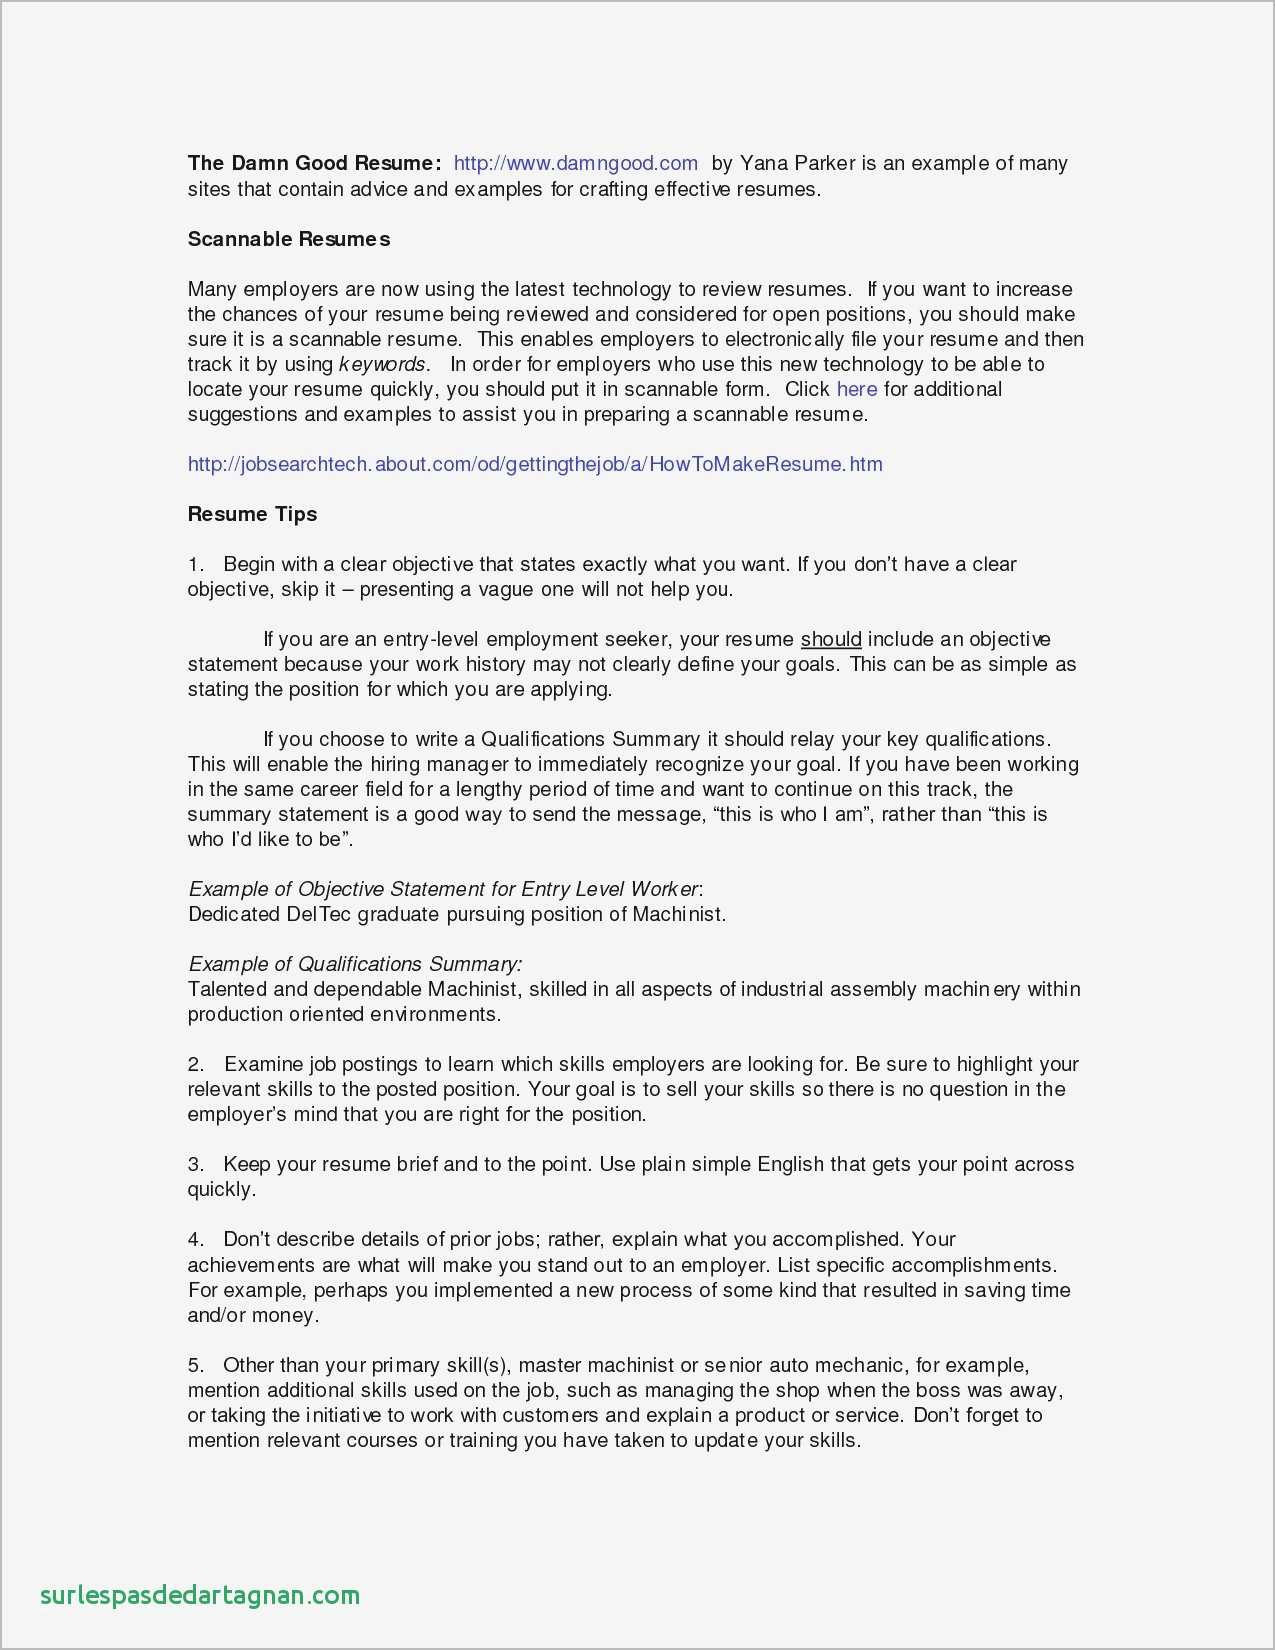 Masters Degree On Resume - How to Write A Resume for Graduate School Popular School Resume